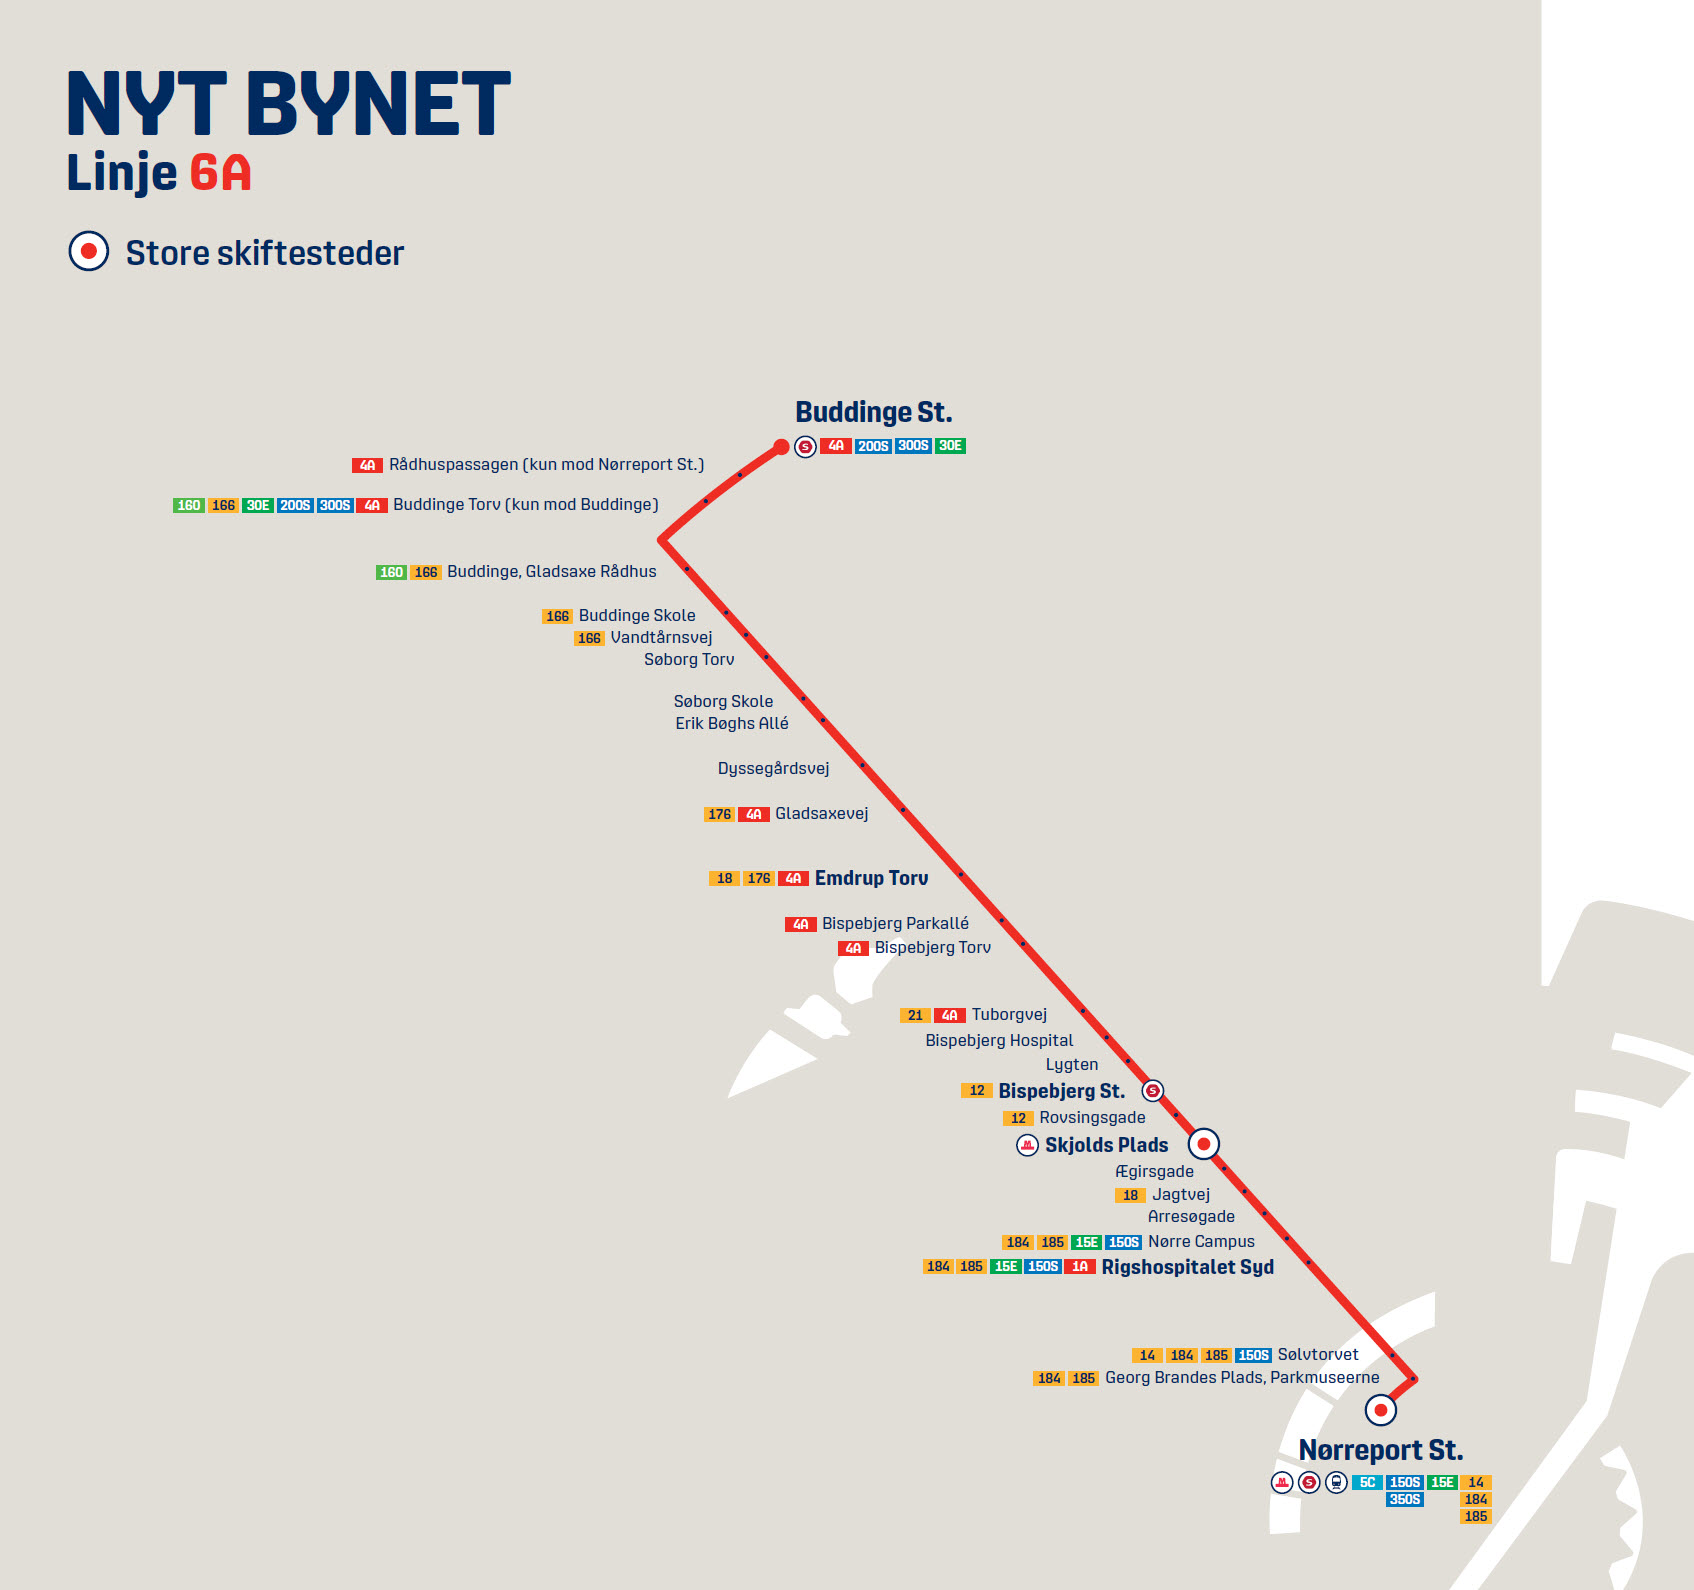 Map of the new line 6A in Nyt Bynet